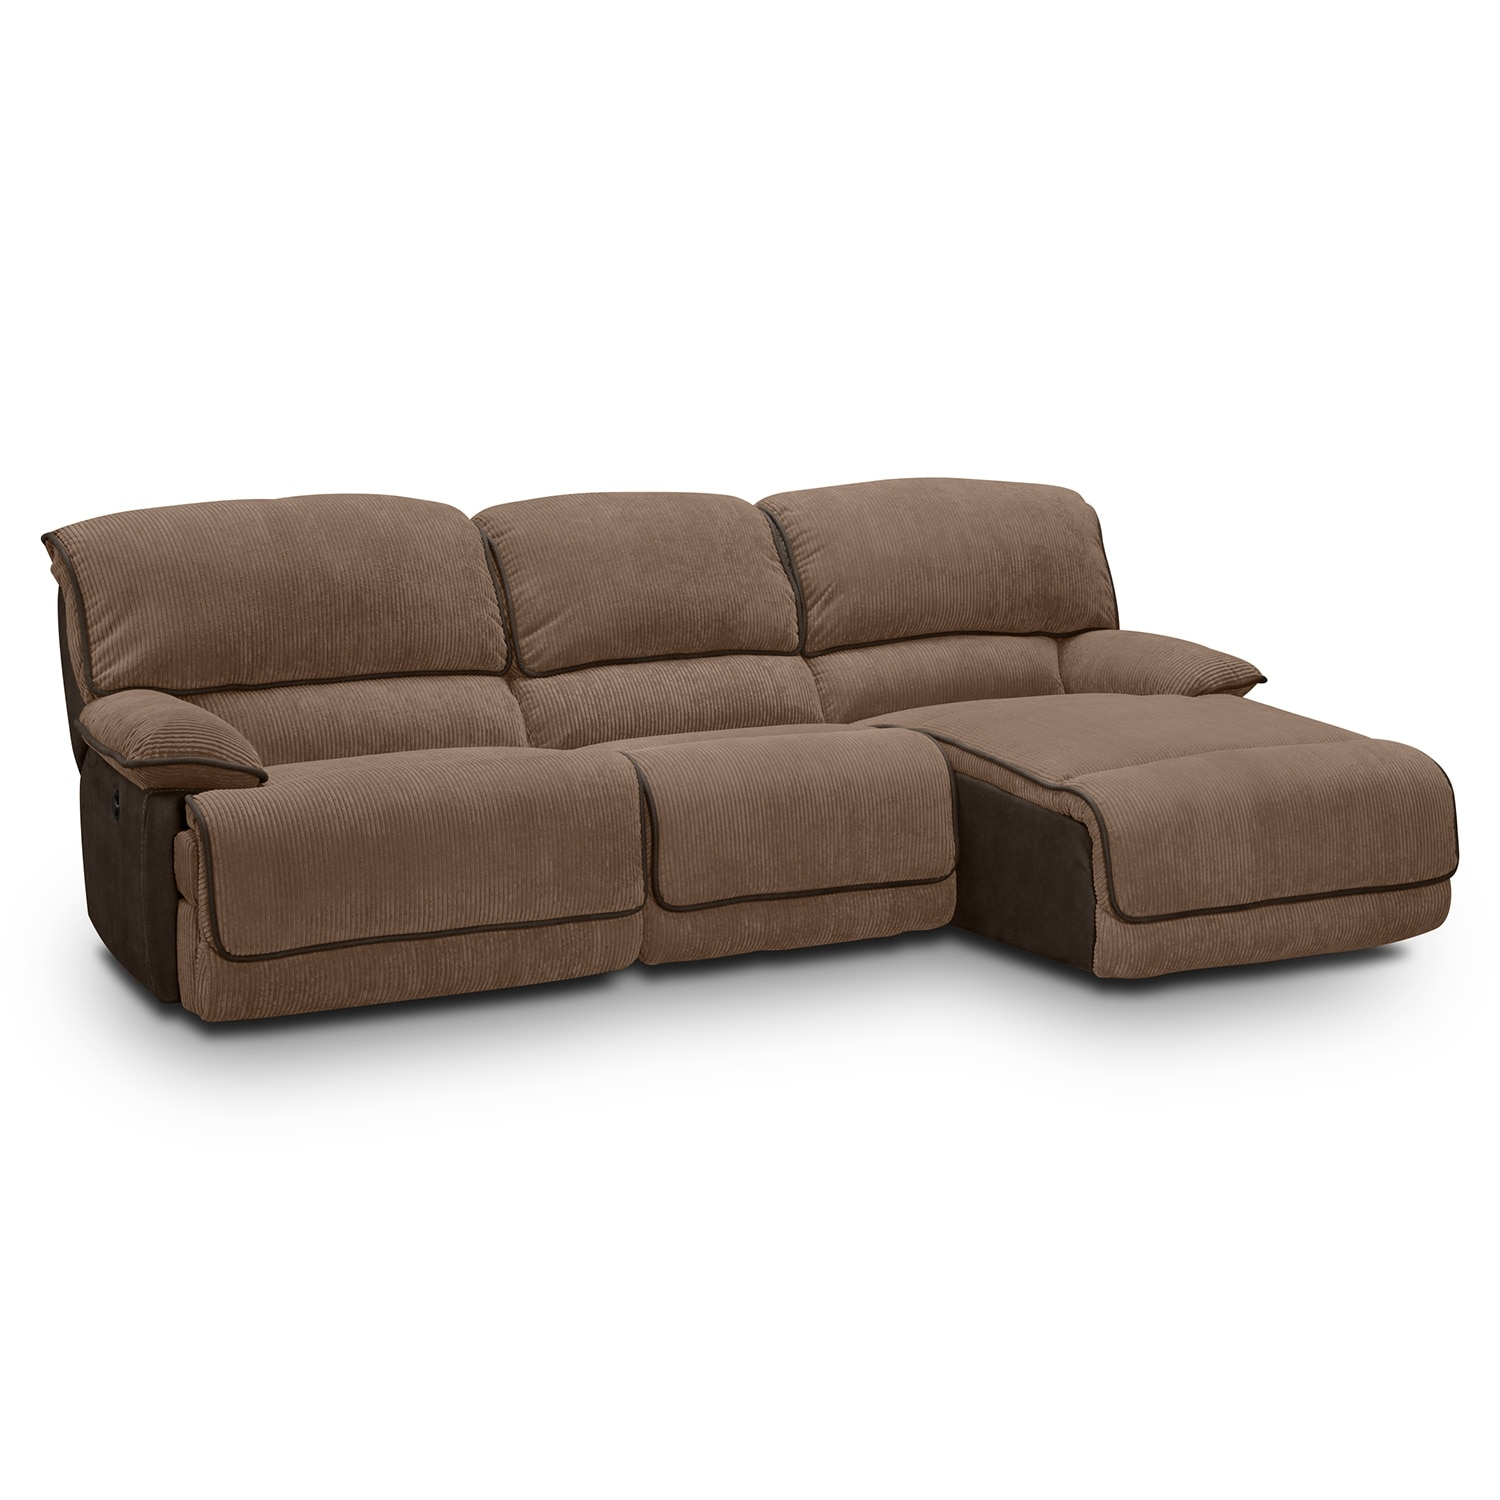 3 sectional sofa with recliner smileydotus for 3 pc sectional sofa with recliners